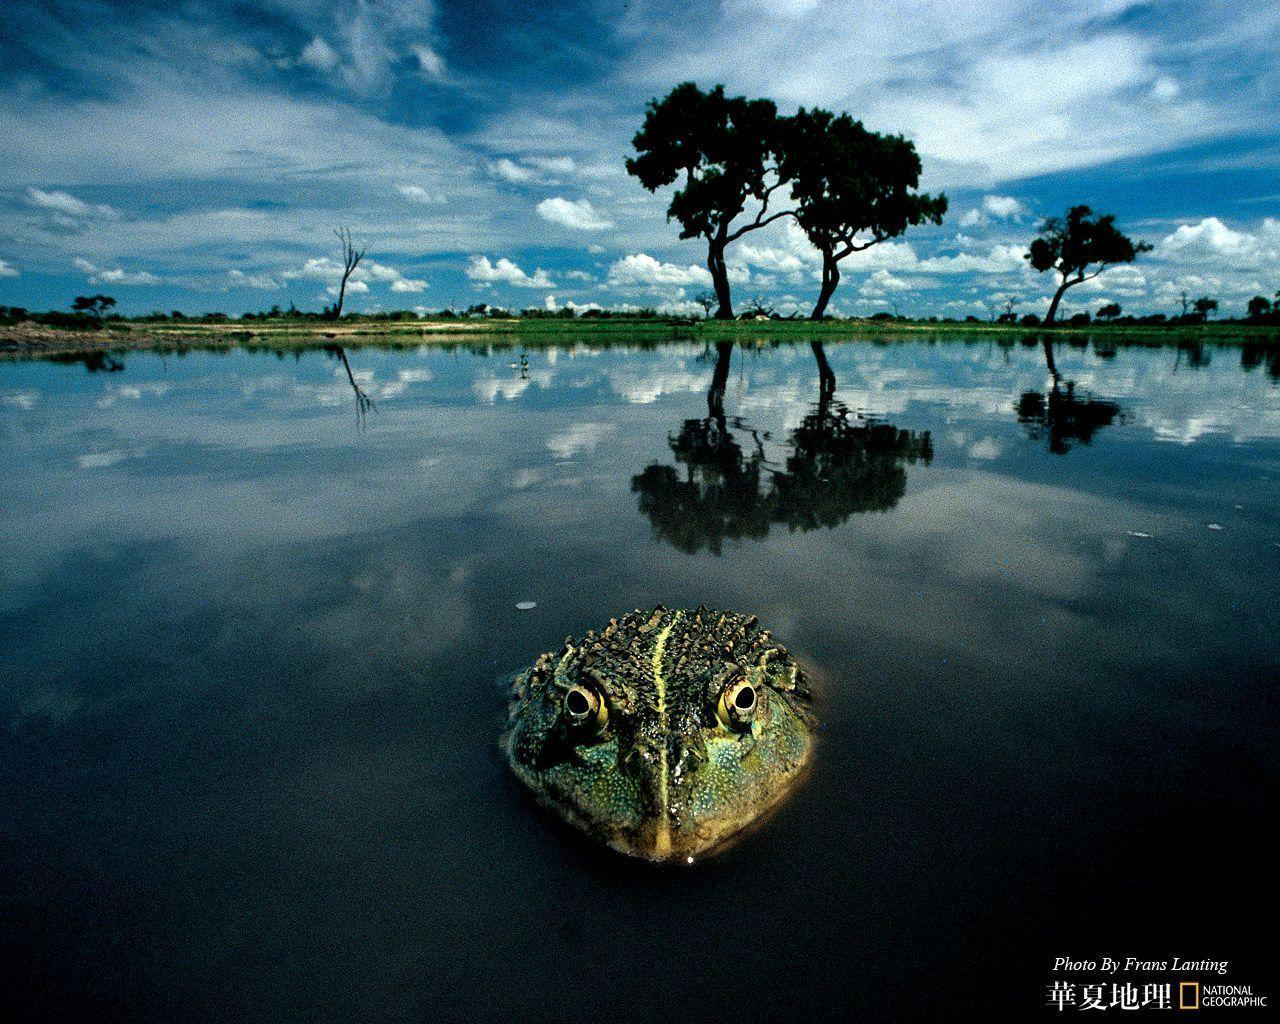 National Geographic Hd Wallpapers Top Free National Geographic Hd Backgrounds Wallpaperaccess